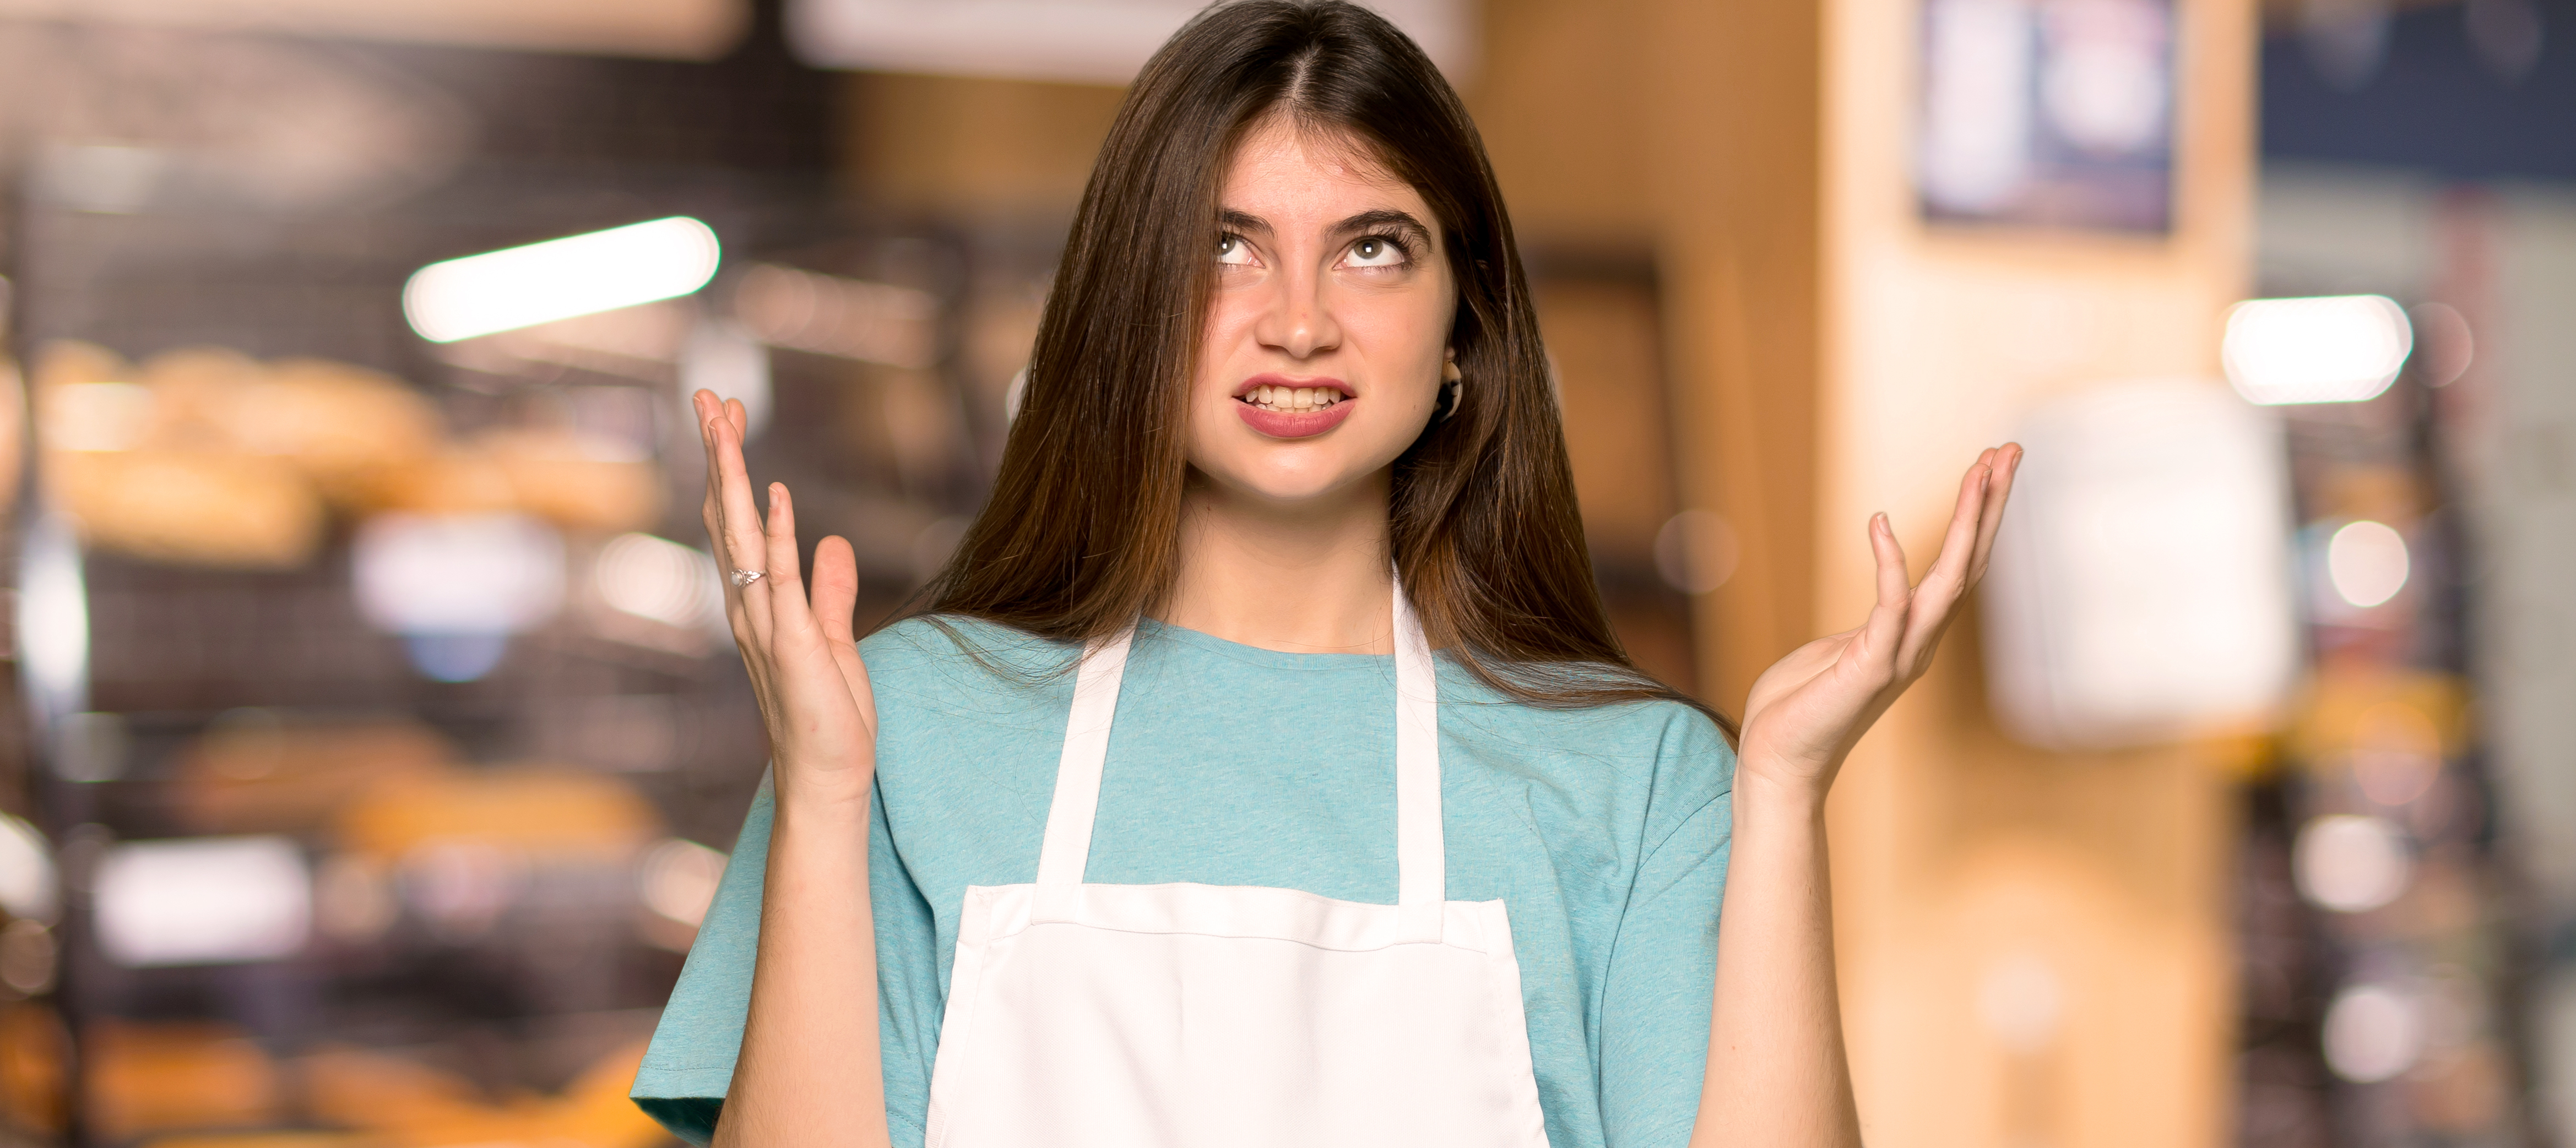 food service market research unhappy worker